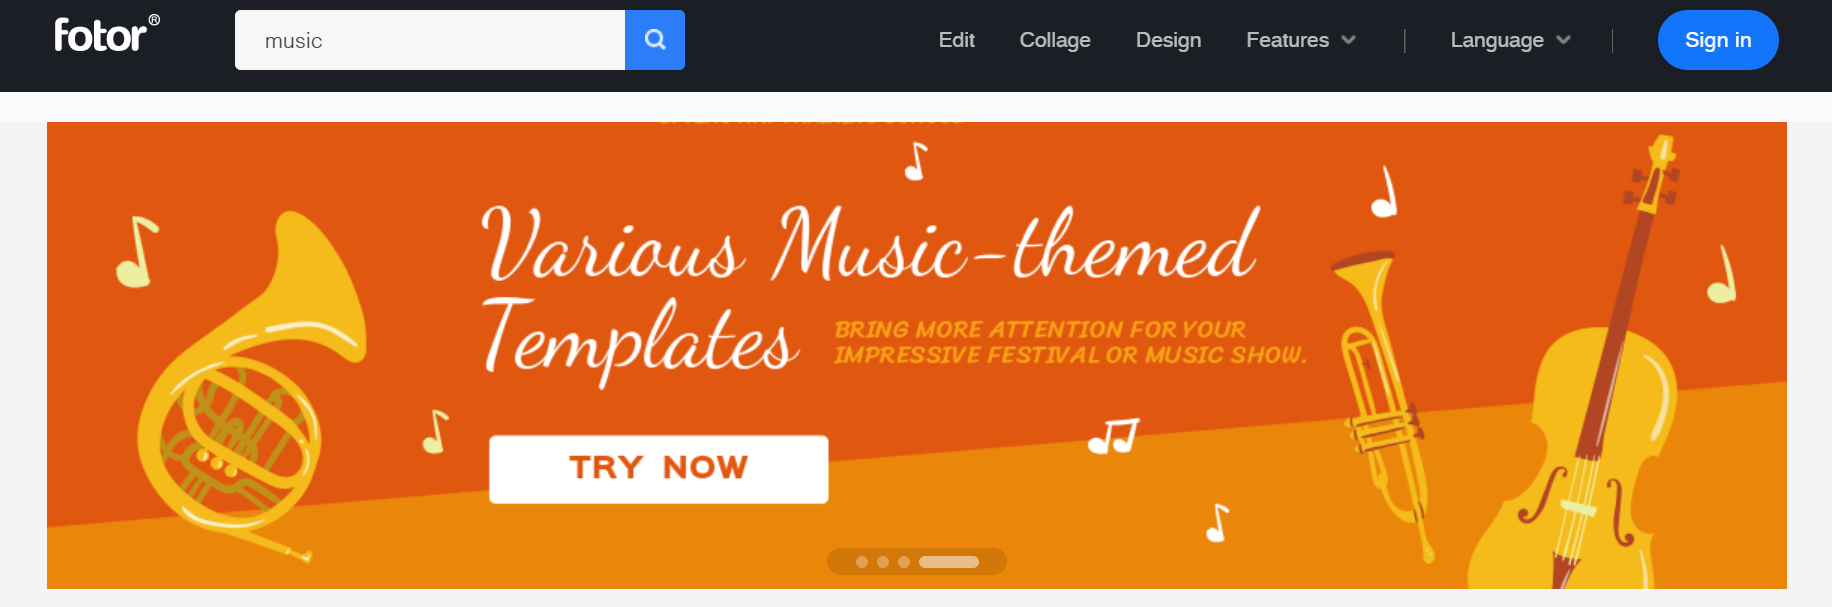 Various music-themed templates from Fotor